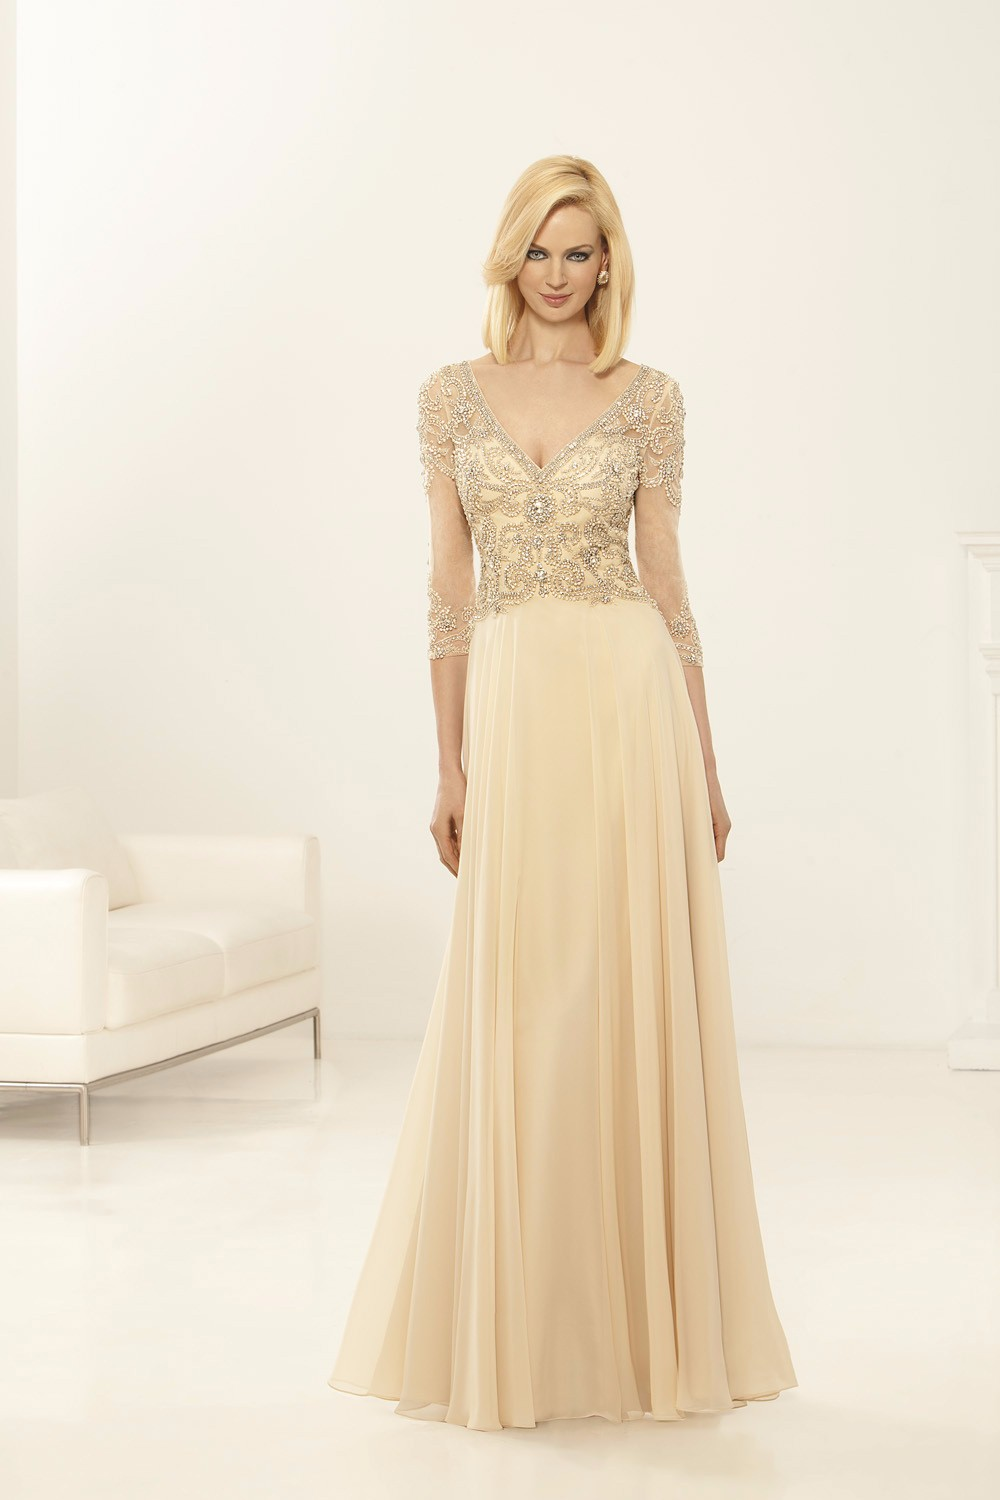 High-Quality-Hand-Beading-Bodice-Bridal-Mother-Gowns-Champagne-Mother-of-the-Bride-Dresses-Plus-Size